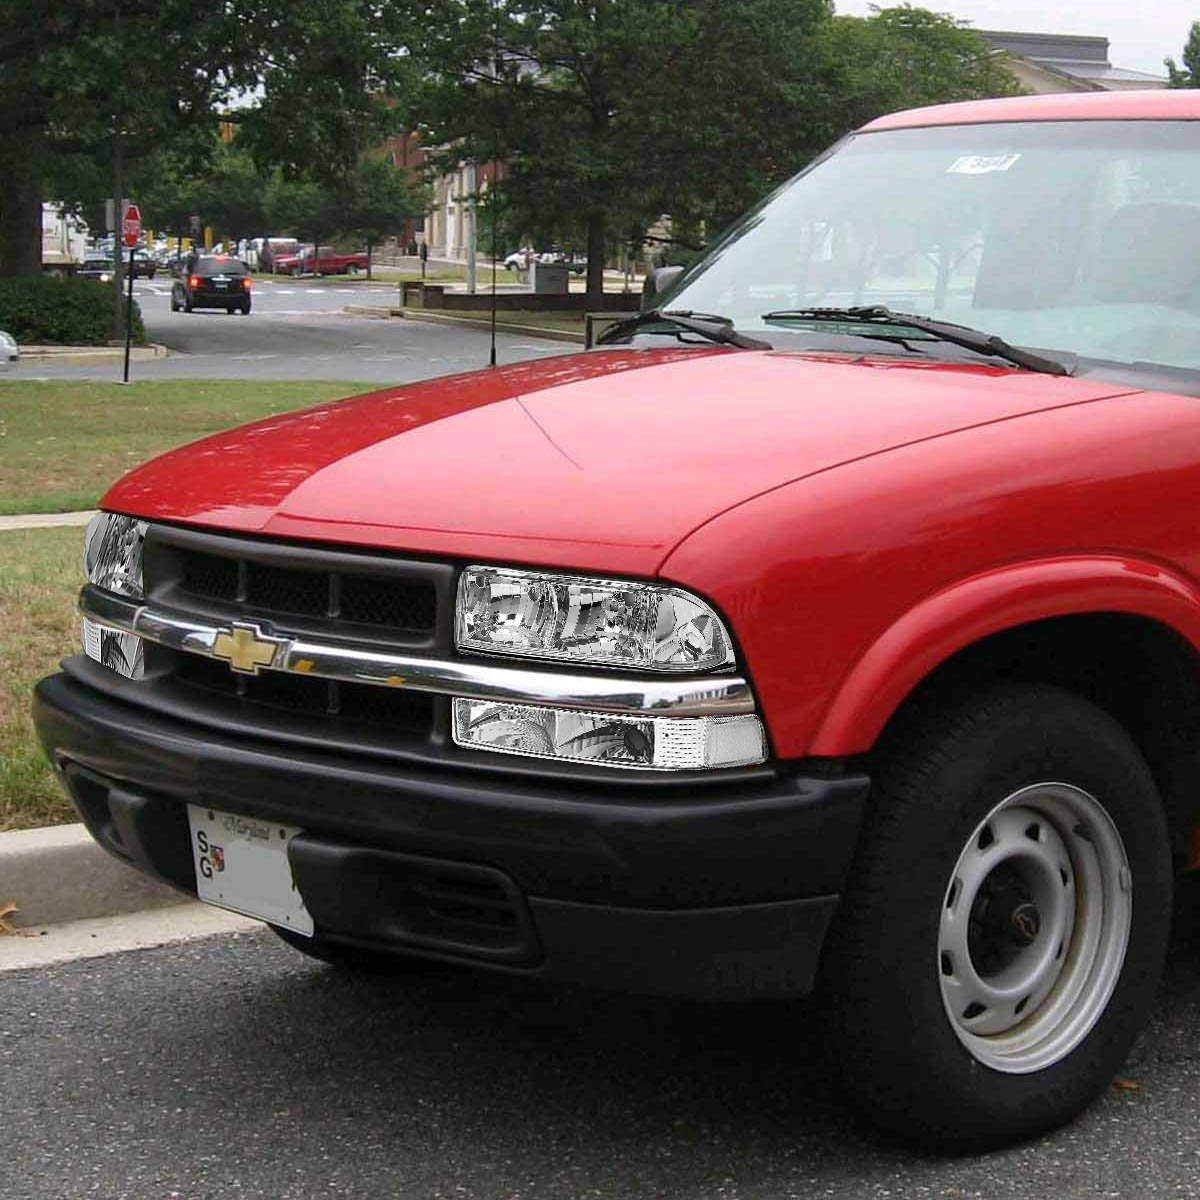 2002 Chevy S10 Wiring Diagram Likewise 1997 Chevy Blazer Fuse Box